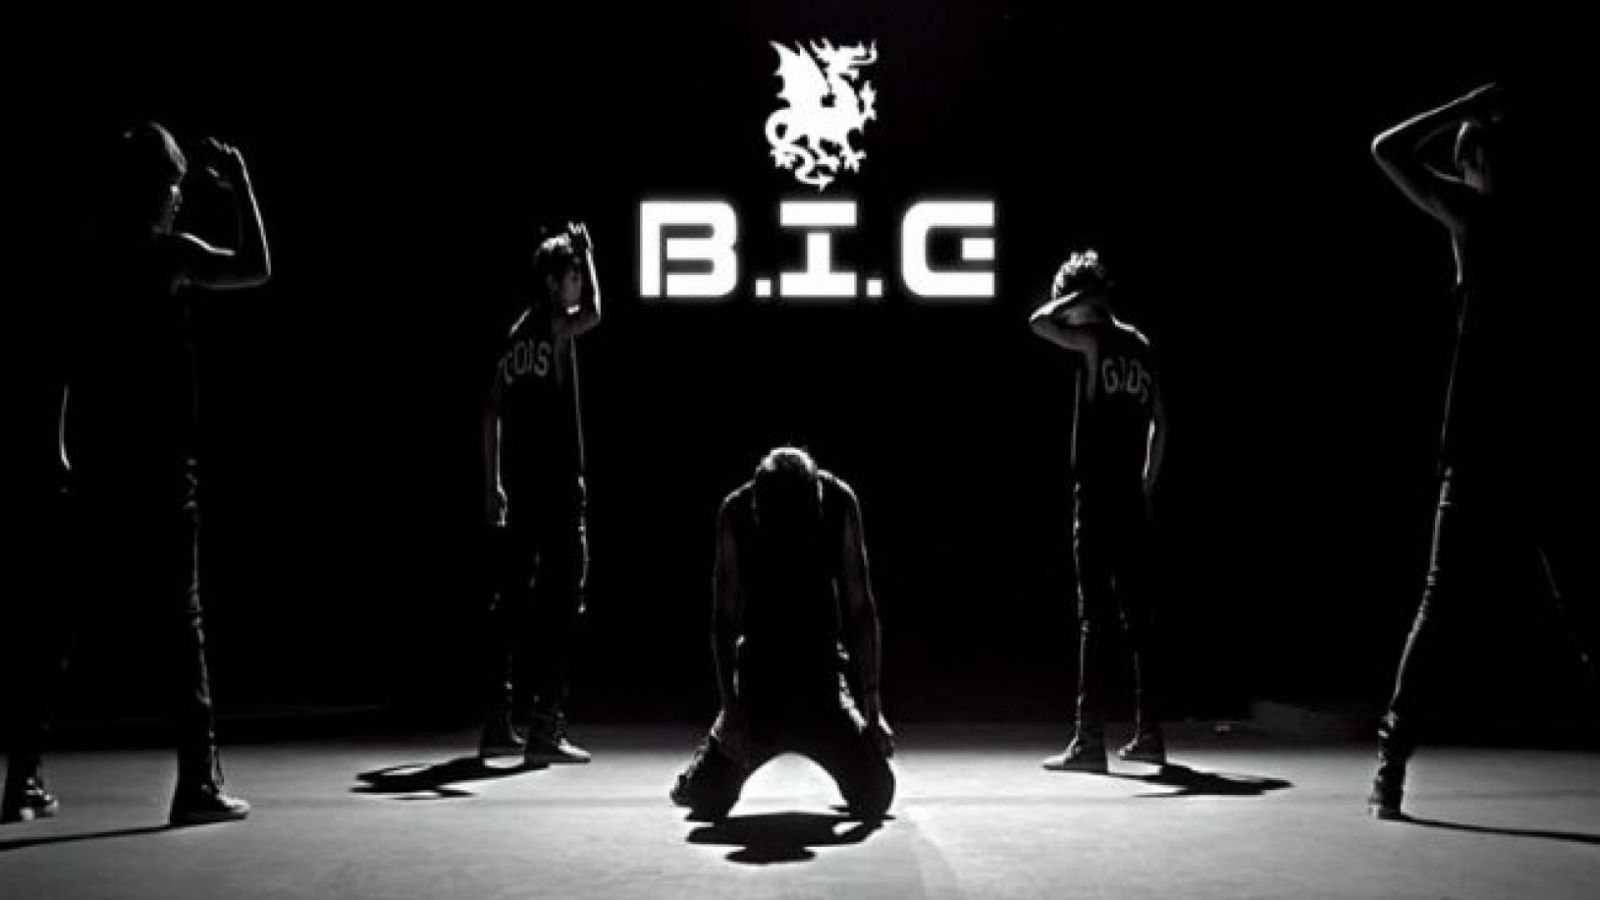 B.I.G estreará com Hello © GH Entertainment